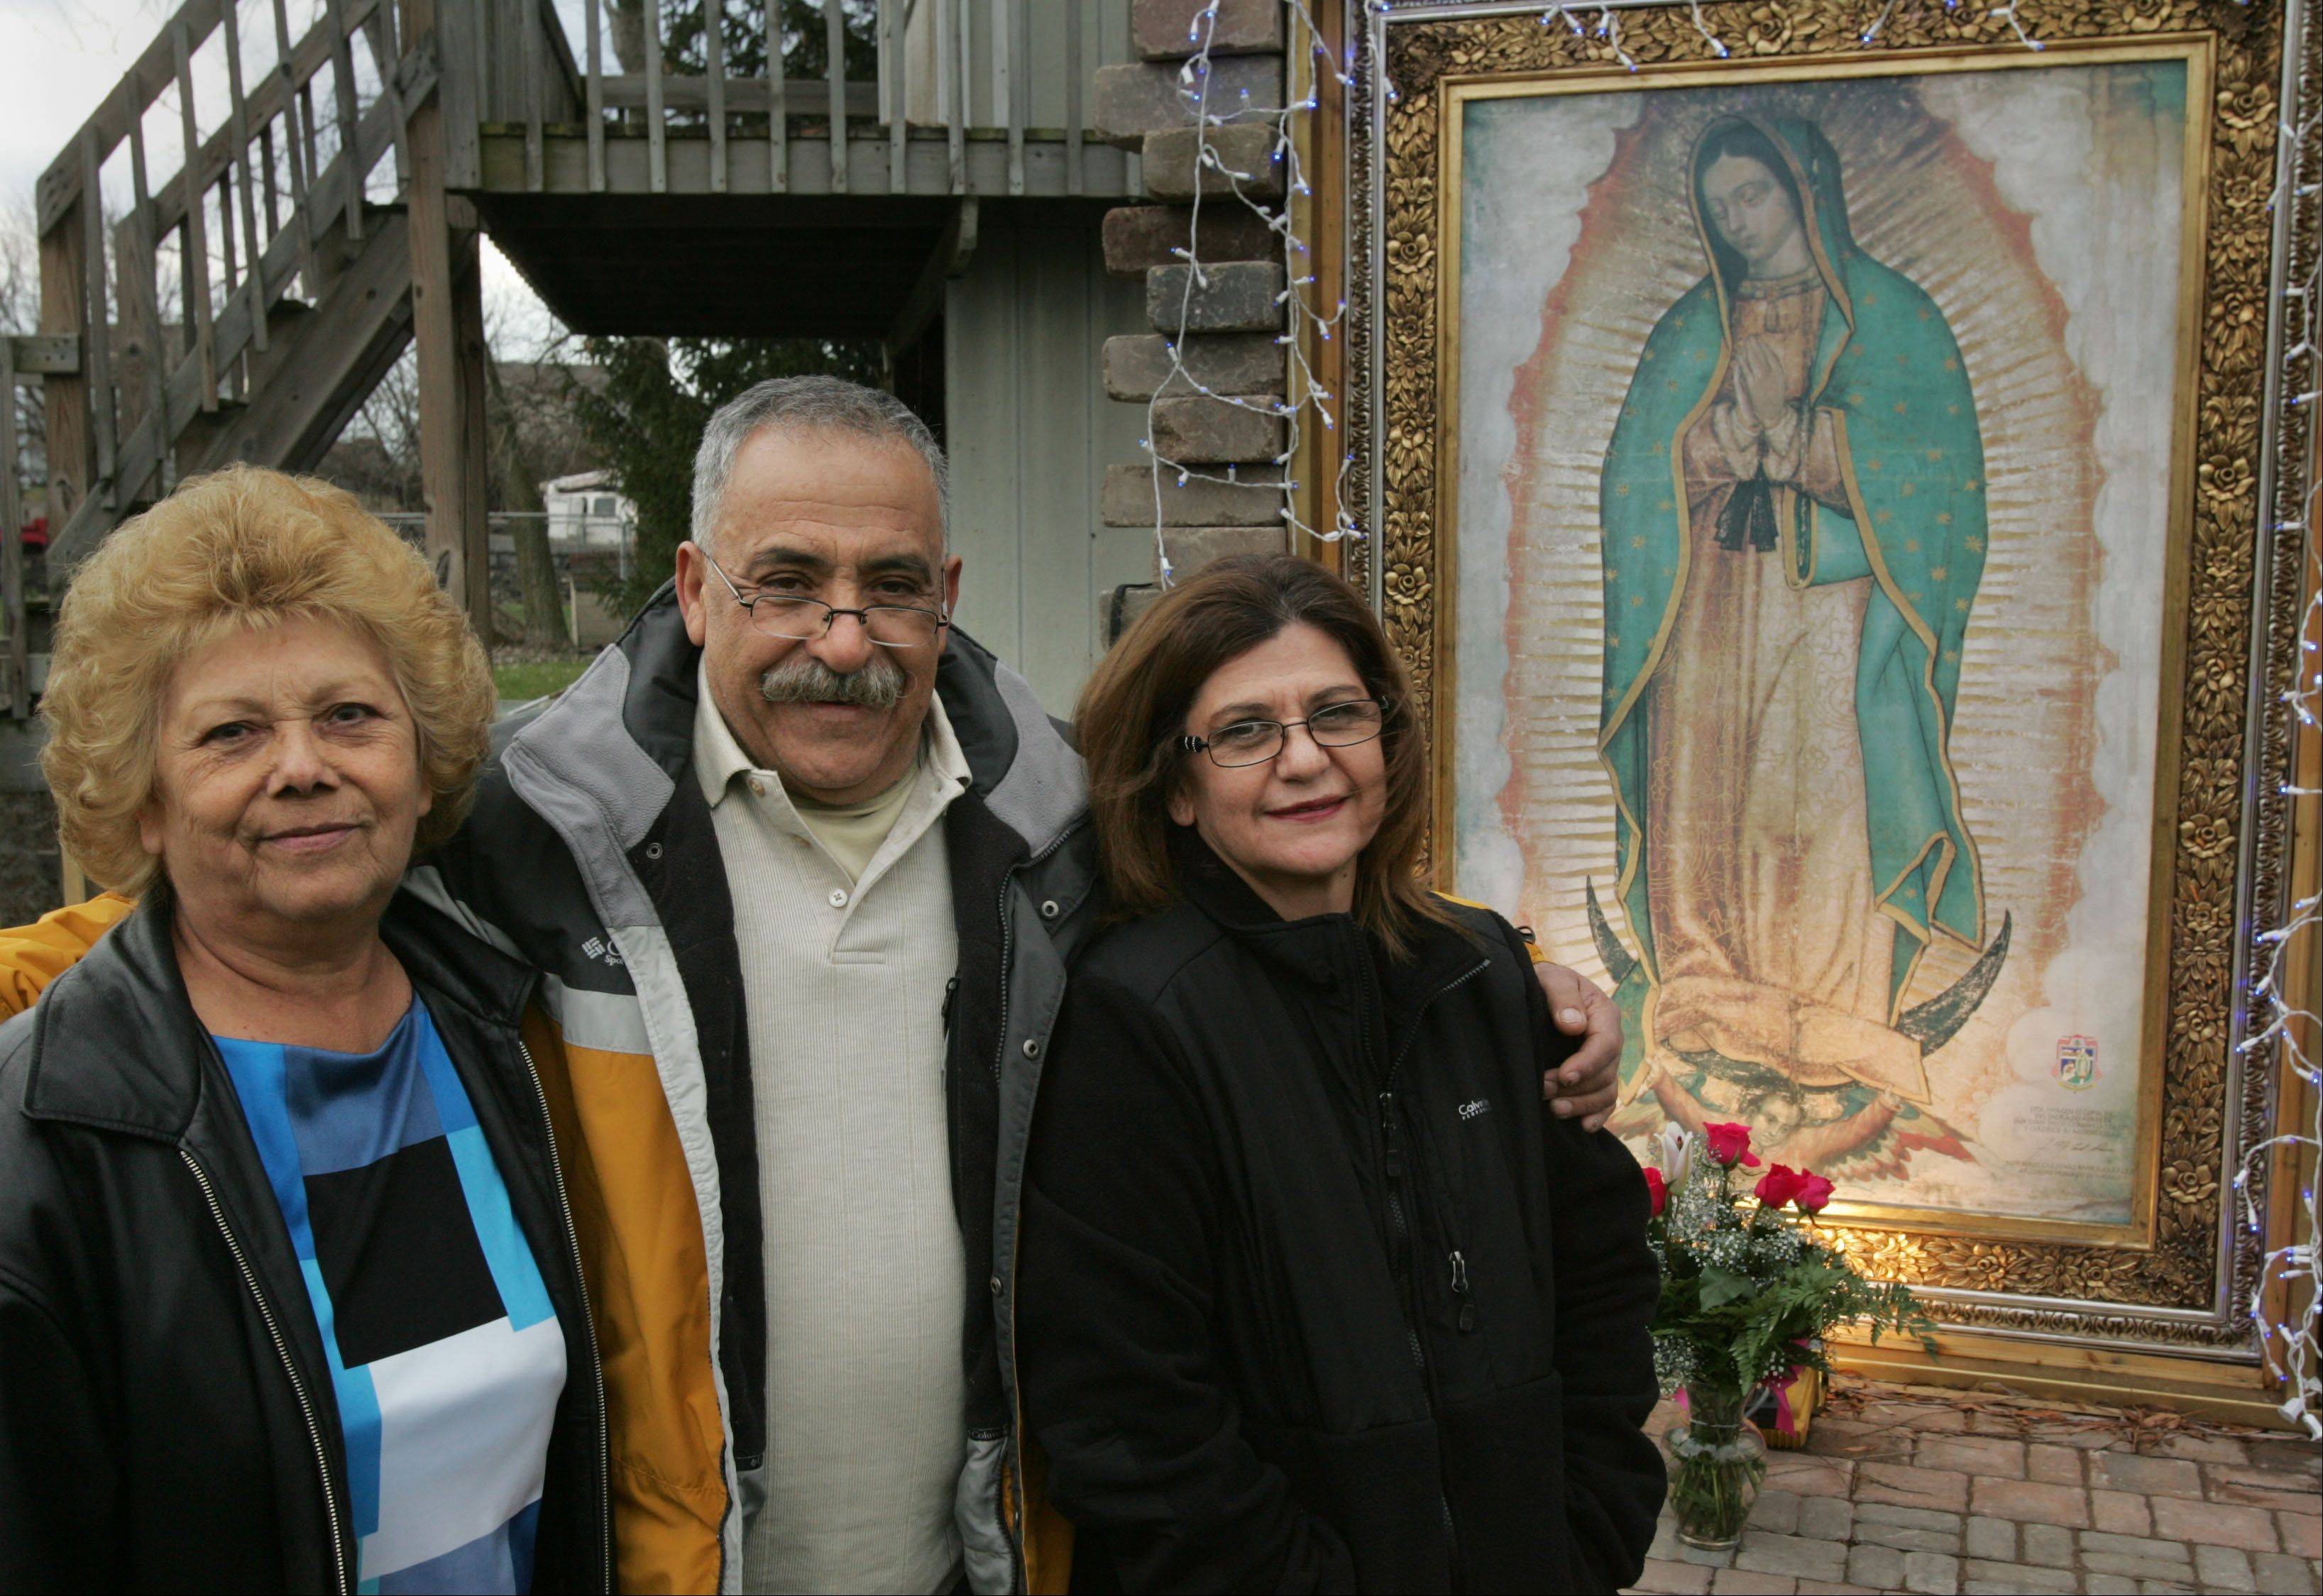 Al Nava and his wife, Fabby, right, have an exact replica of the Virgin of Guadalupe on display in the backyard of their Elgin home. Also pictured is Rosalinda Padilla of Elgin, a close family friend of the Navas.